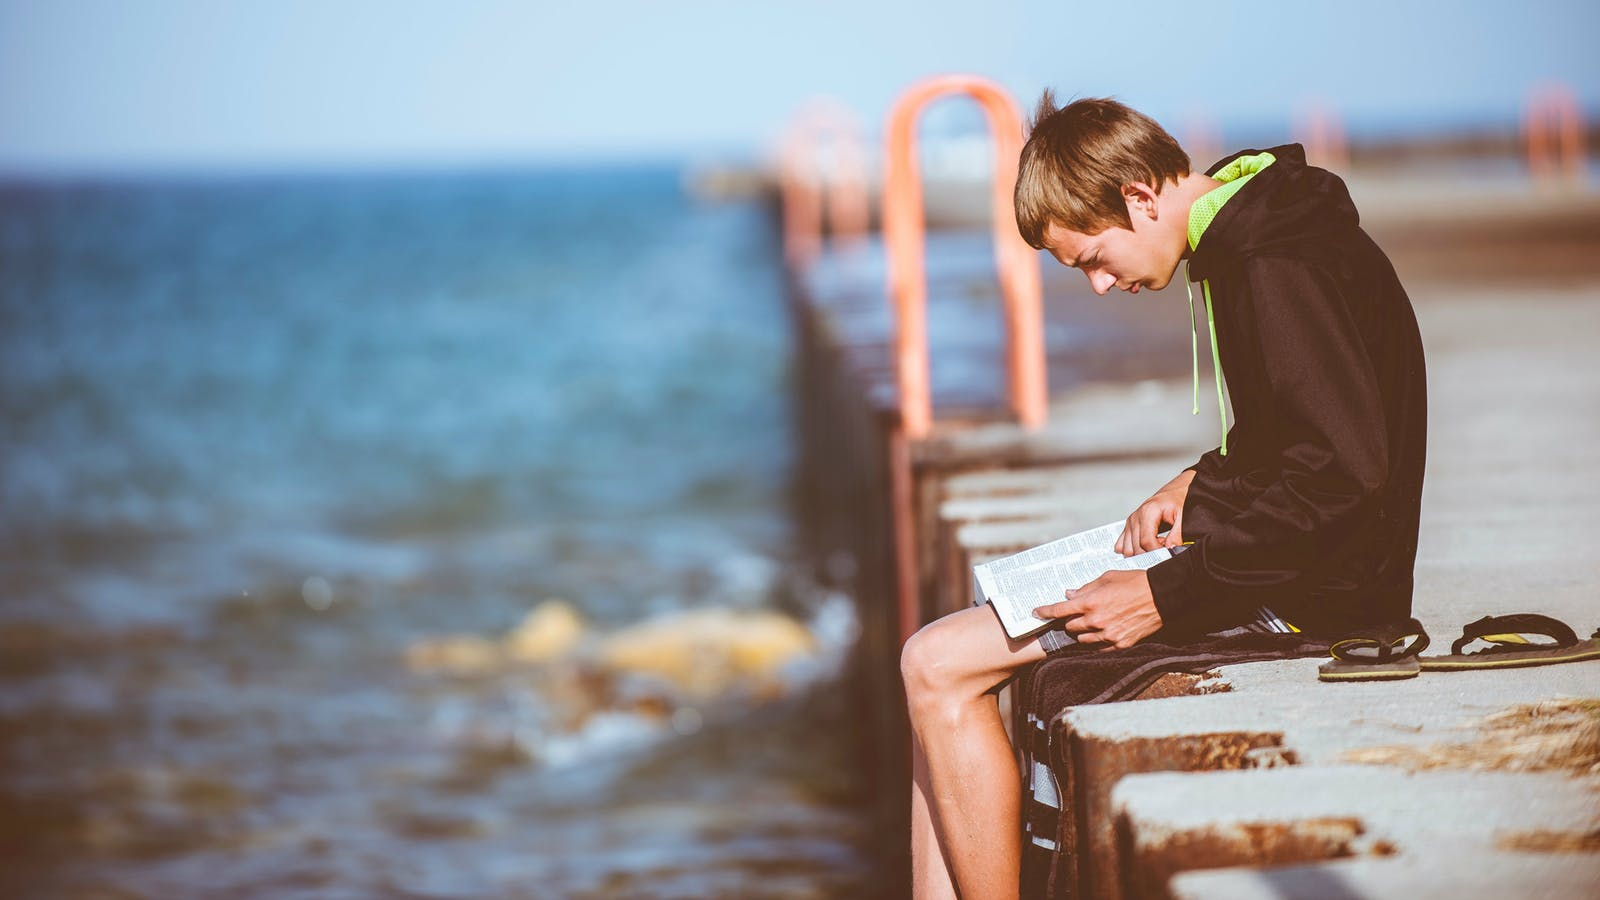 How to Go Deeper in Bible Study: Letter to a 13-Year-Old